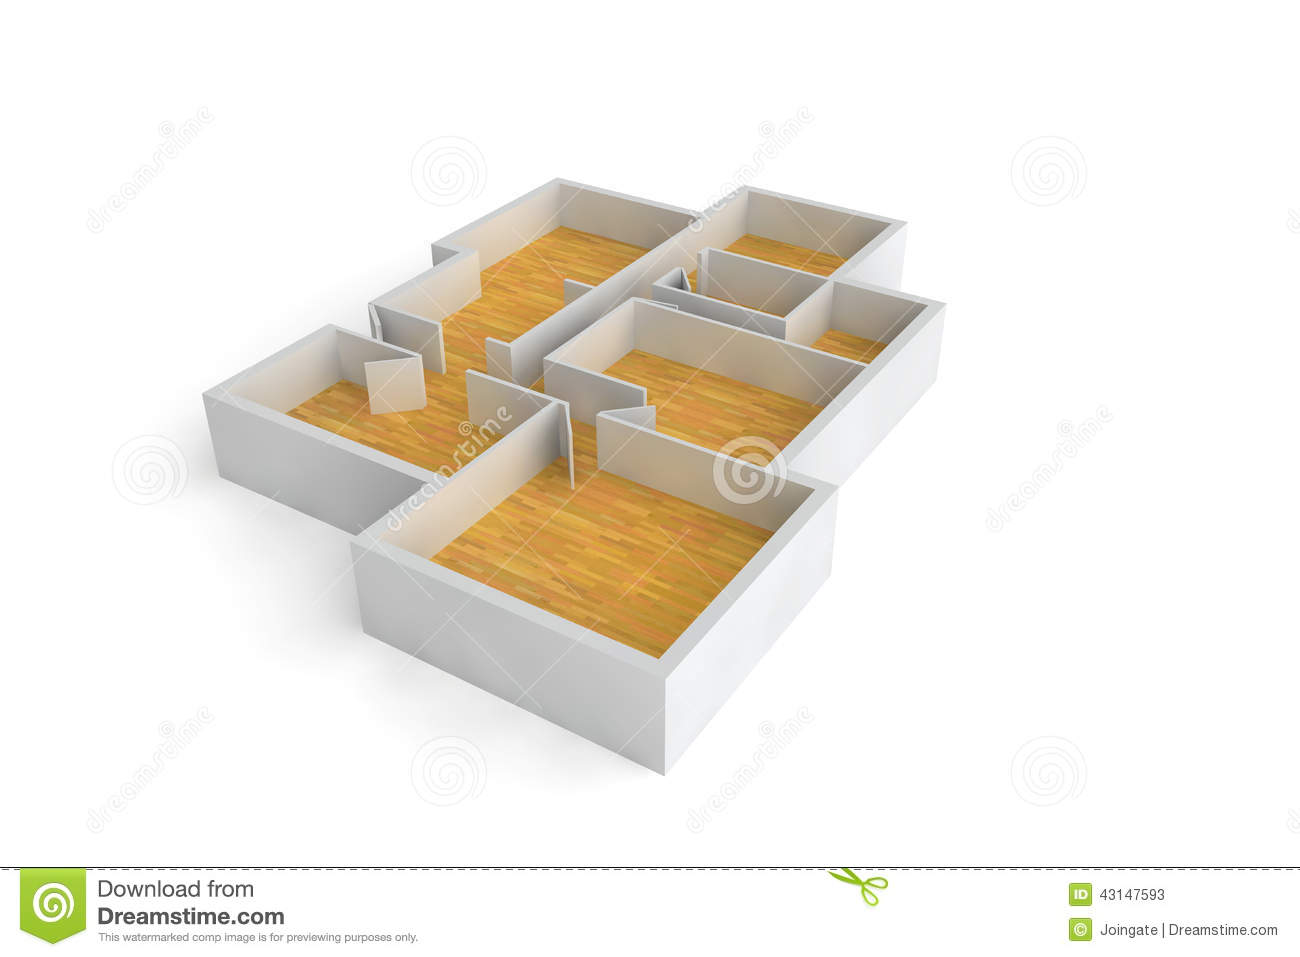 Floorplan for a typical house or office building wooden for Building a house layout